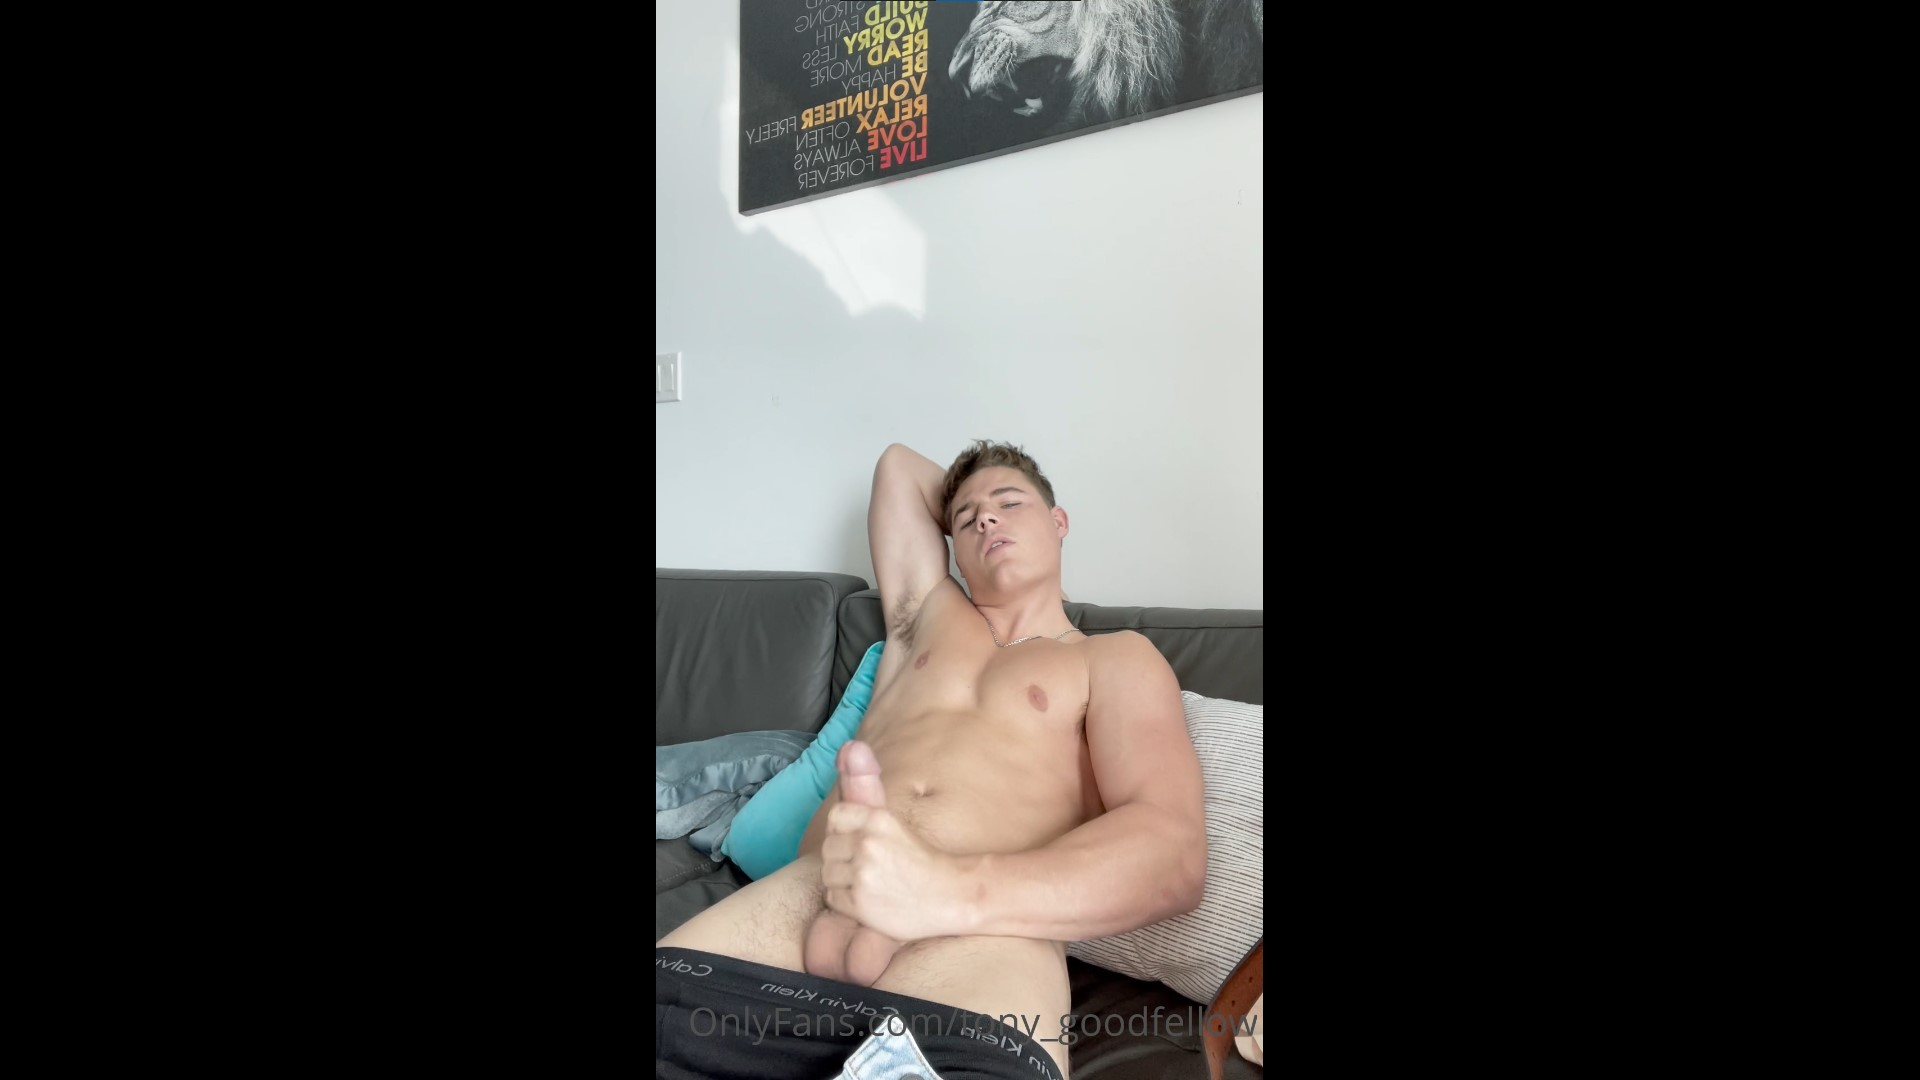 Jerking off and shooting a load over myself - Tony Goodfellow (tony_goodfellow)